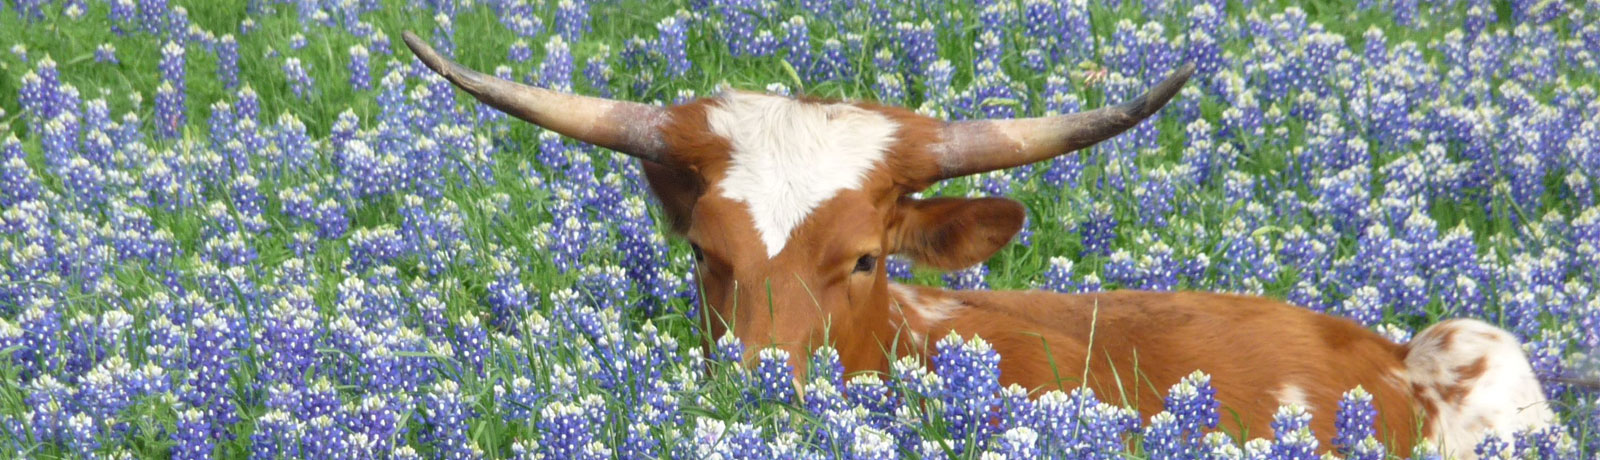 Longhorns are Shy